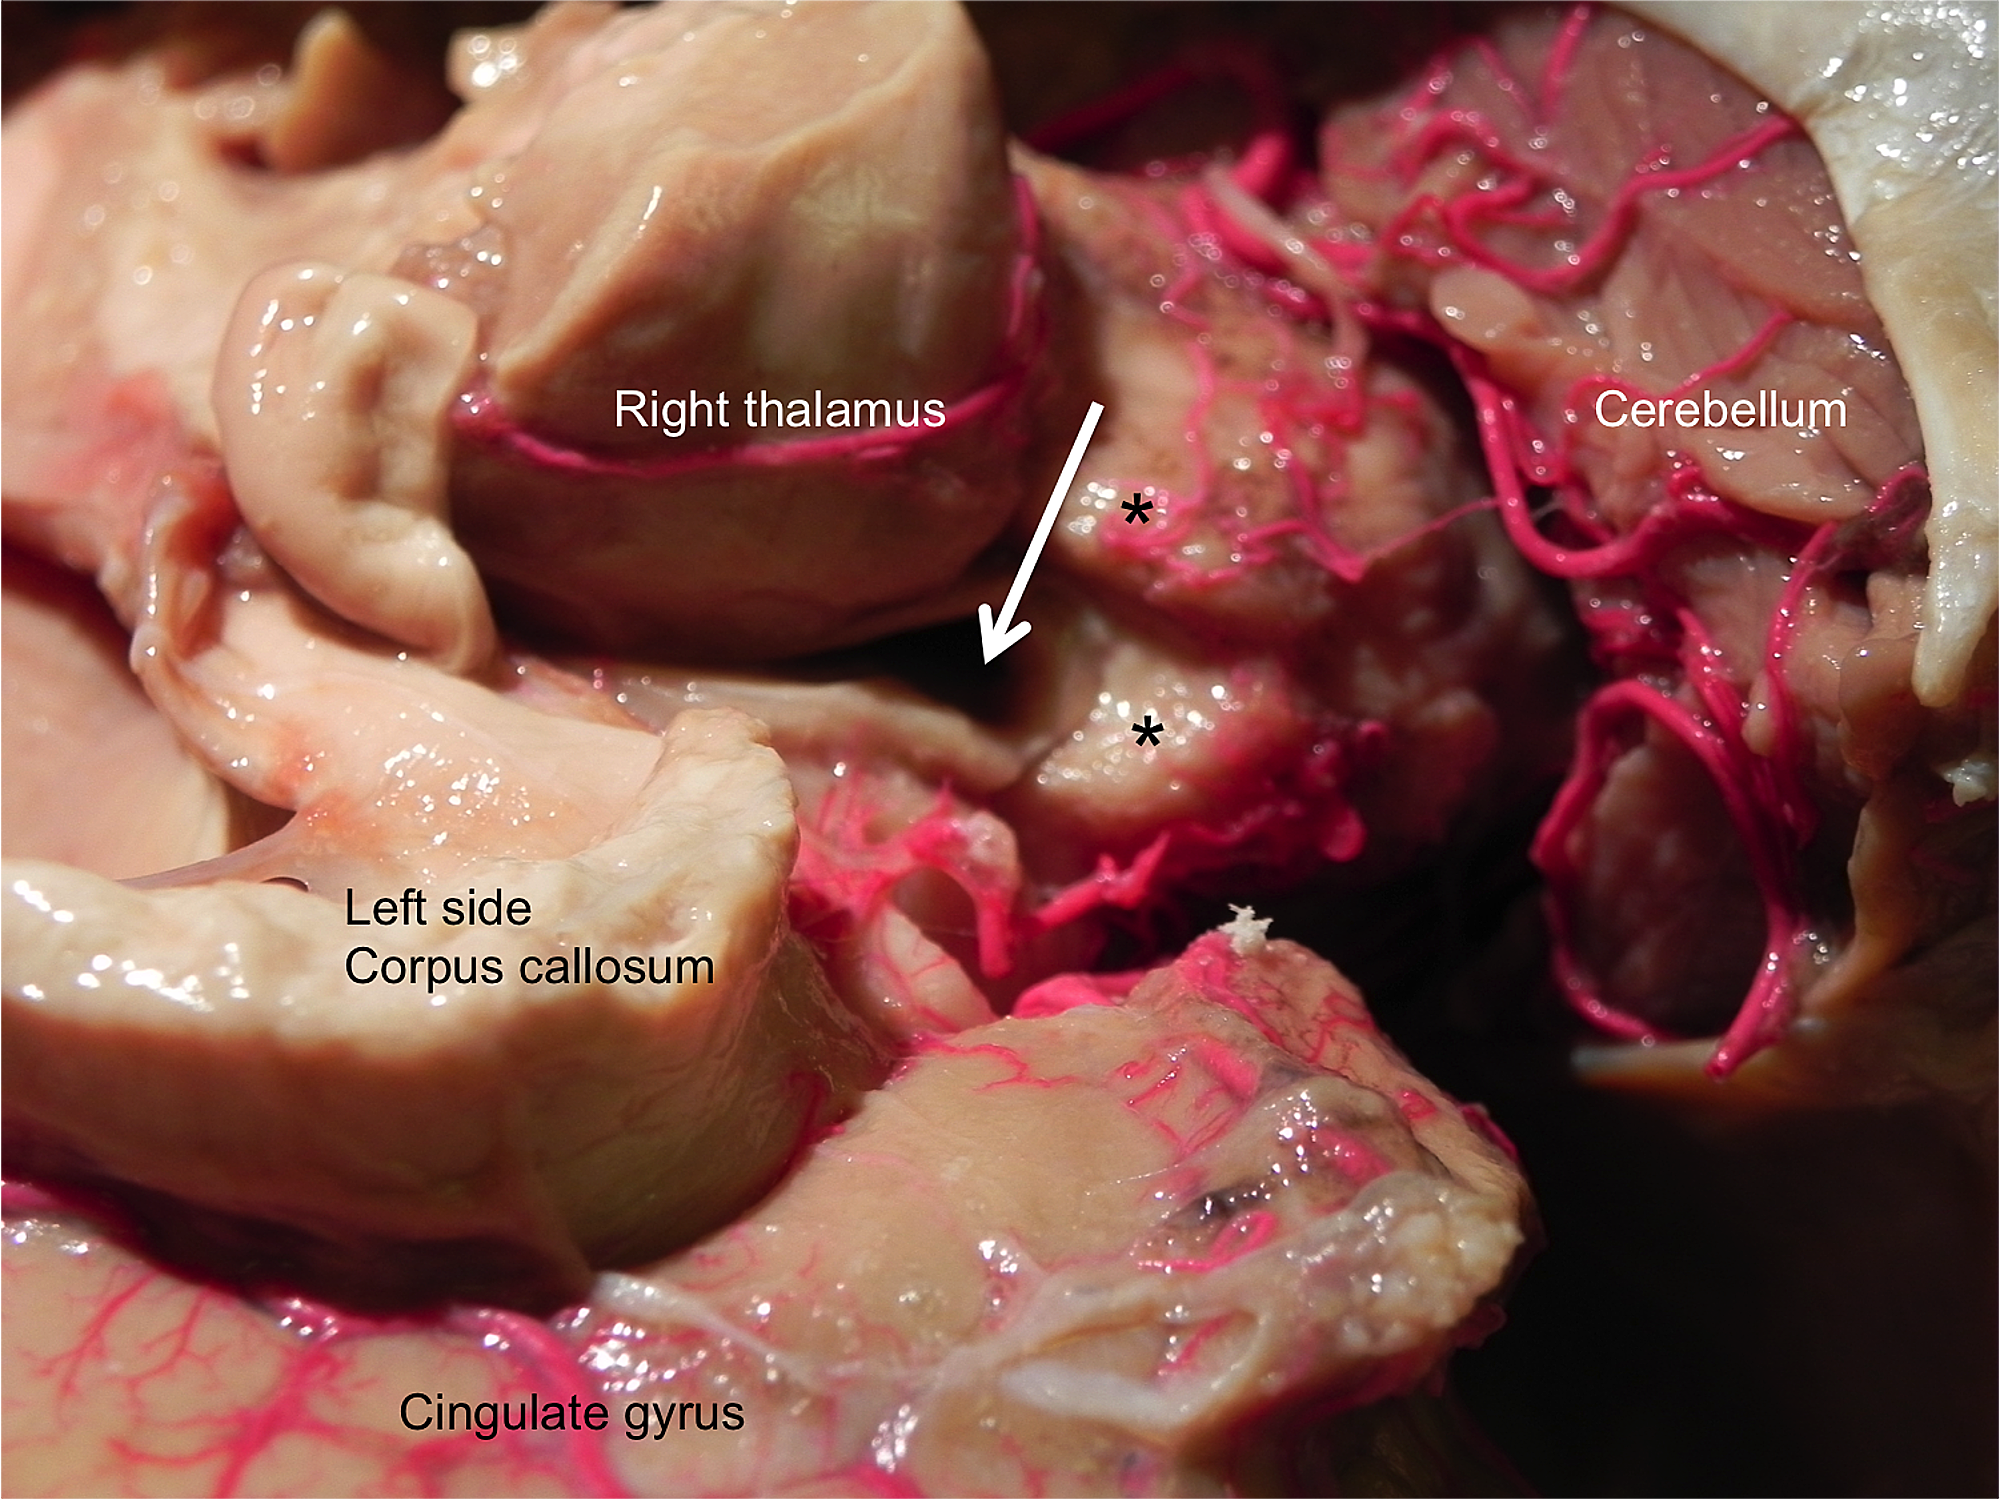 Cureus Pineal Gland Agenesis Review And Case Illustration